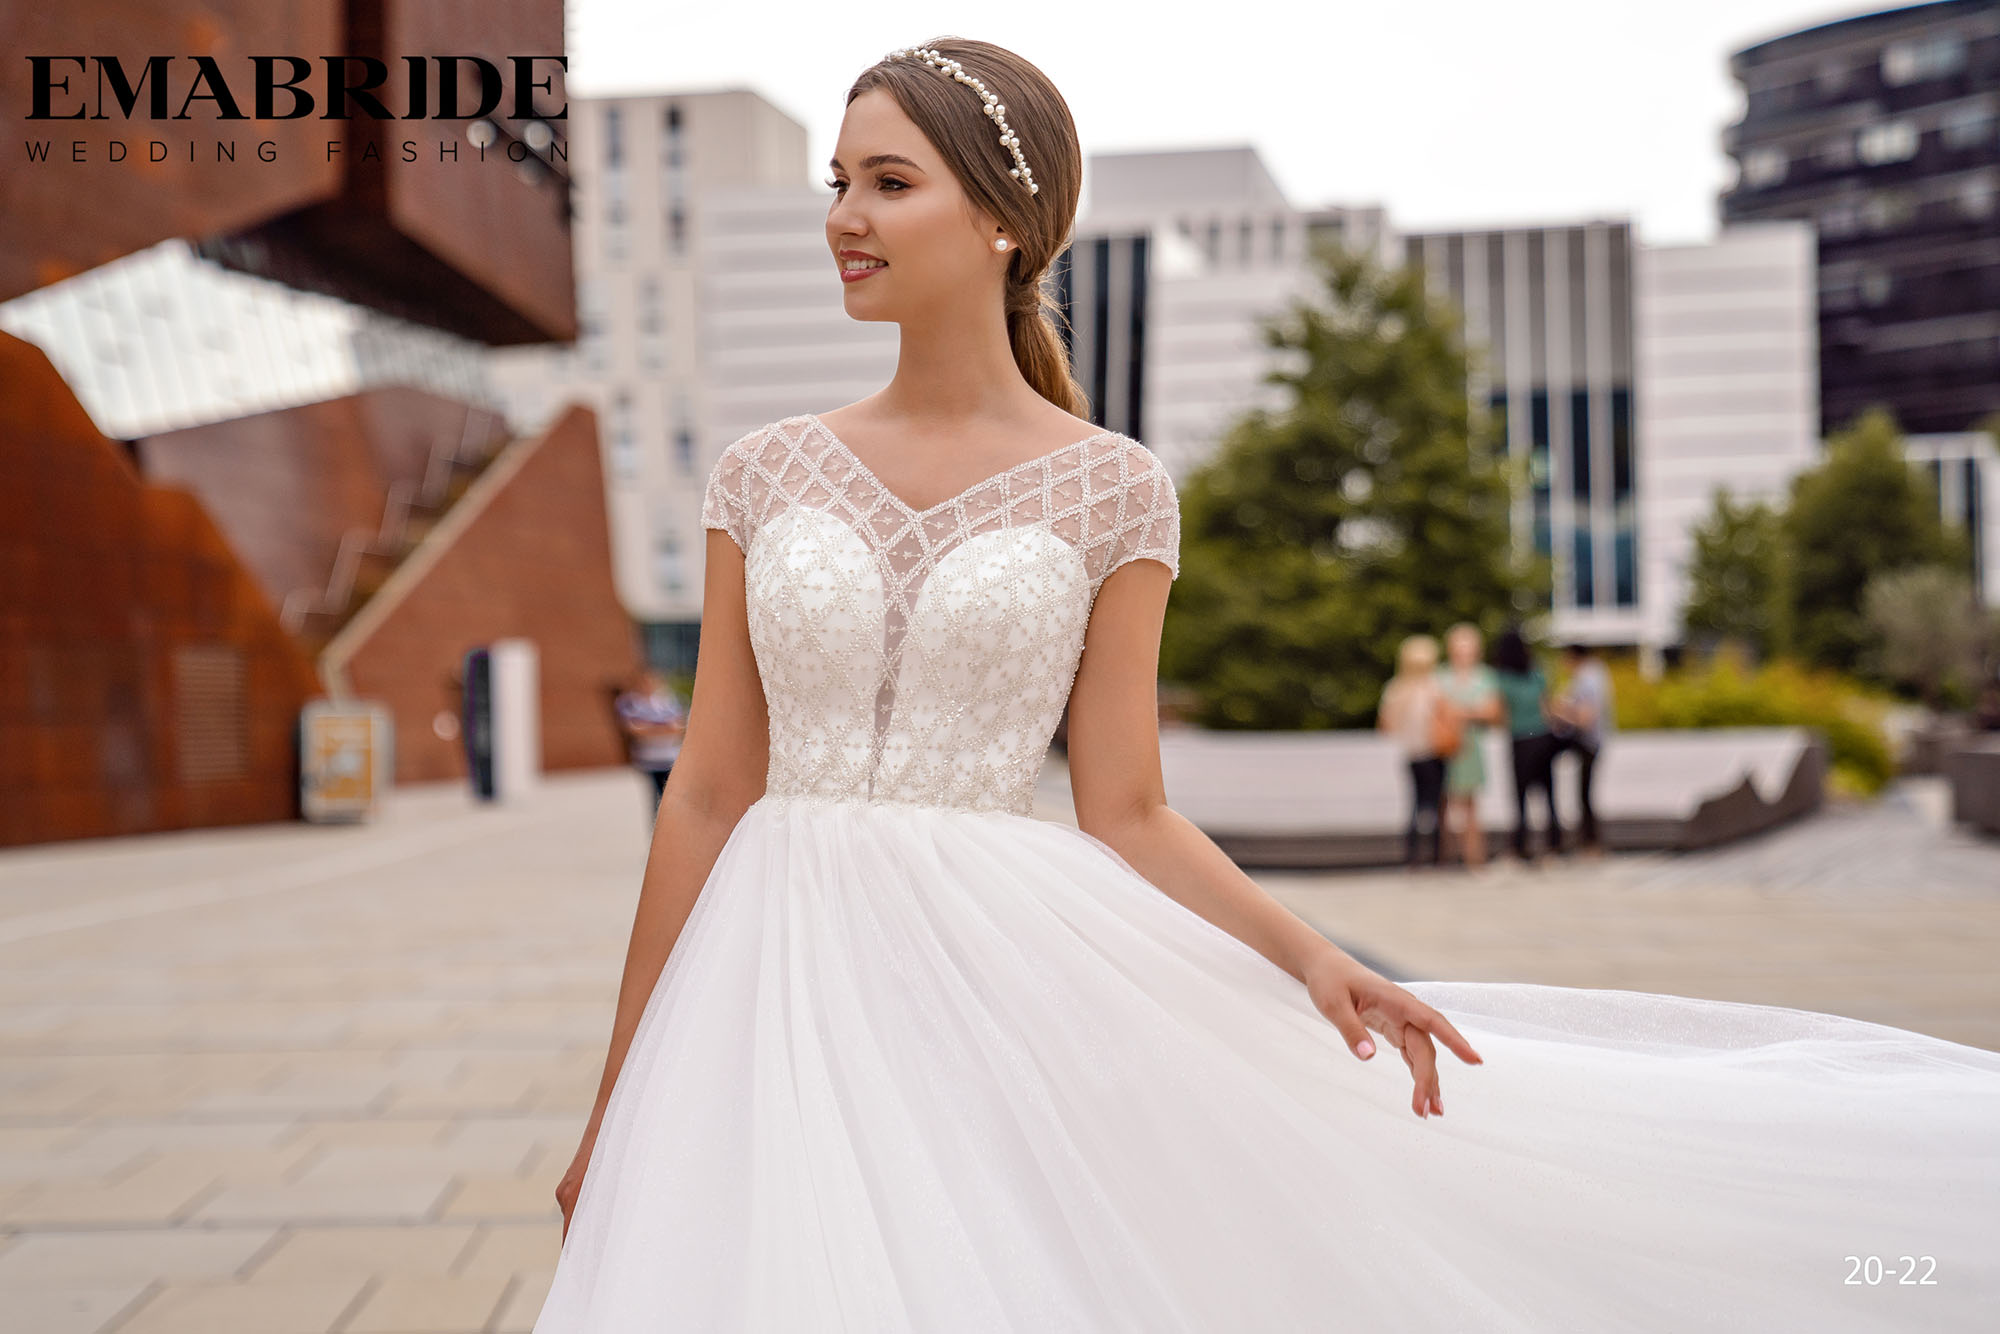 Model 20-22 | Buy wedding dresses wholesale by the ukrainian manufacturer Emabride-1